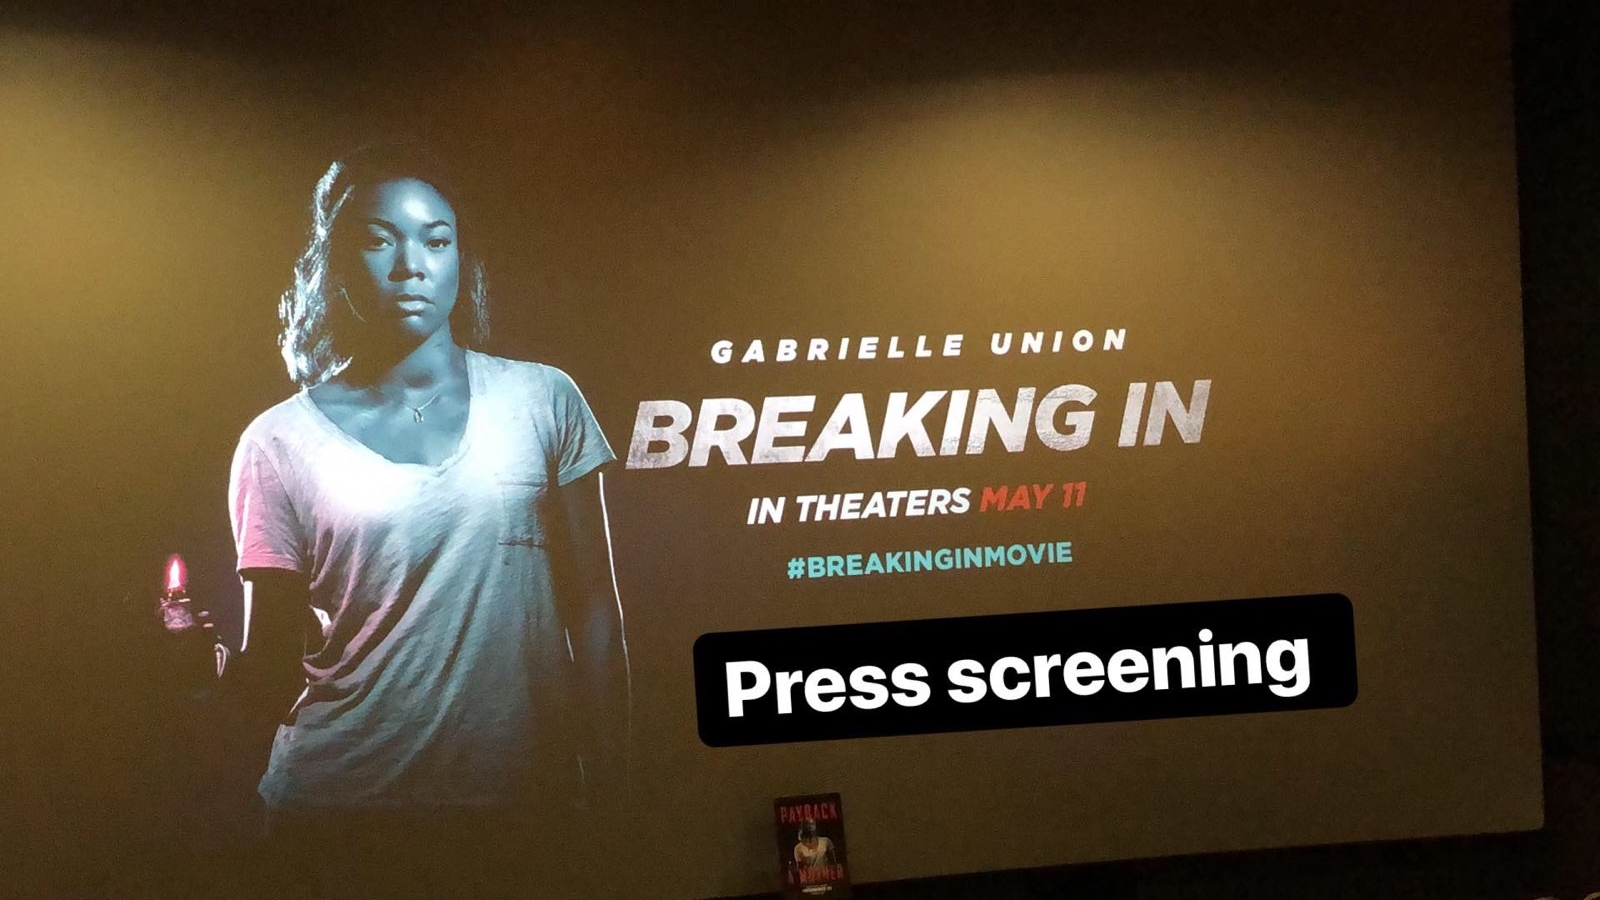 gabrielle_union_breaking_in